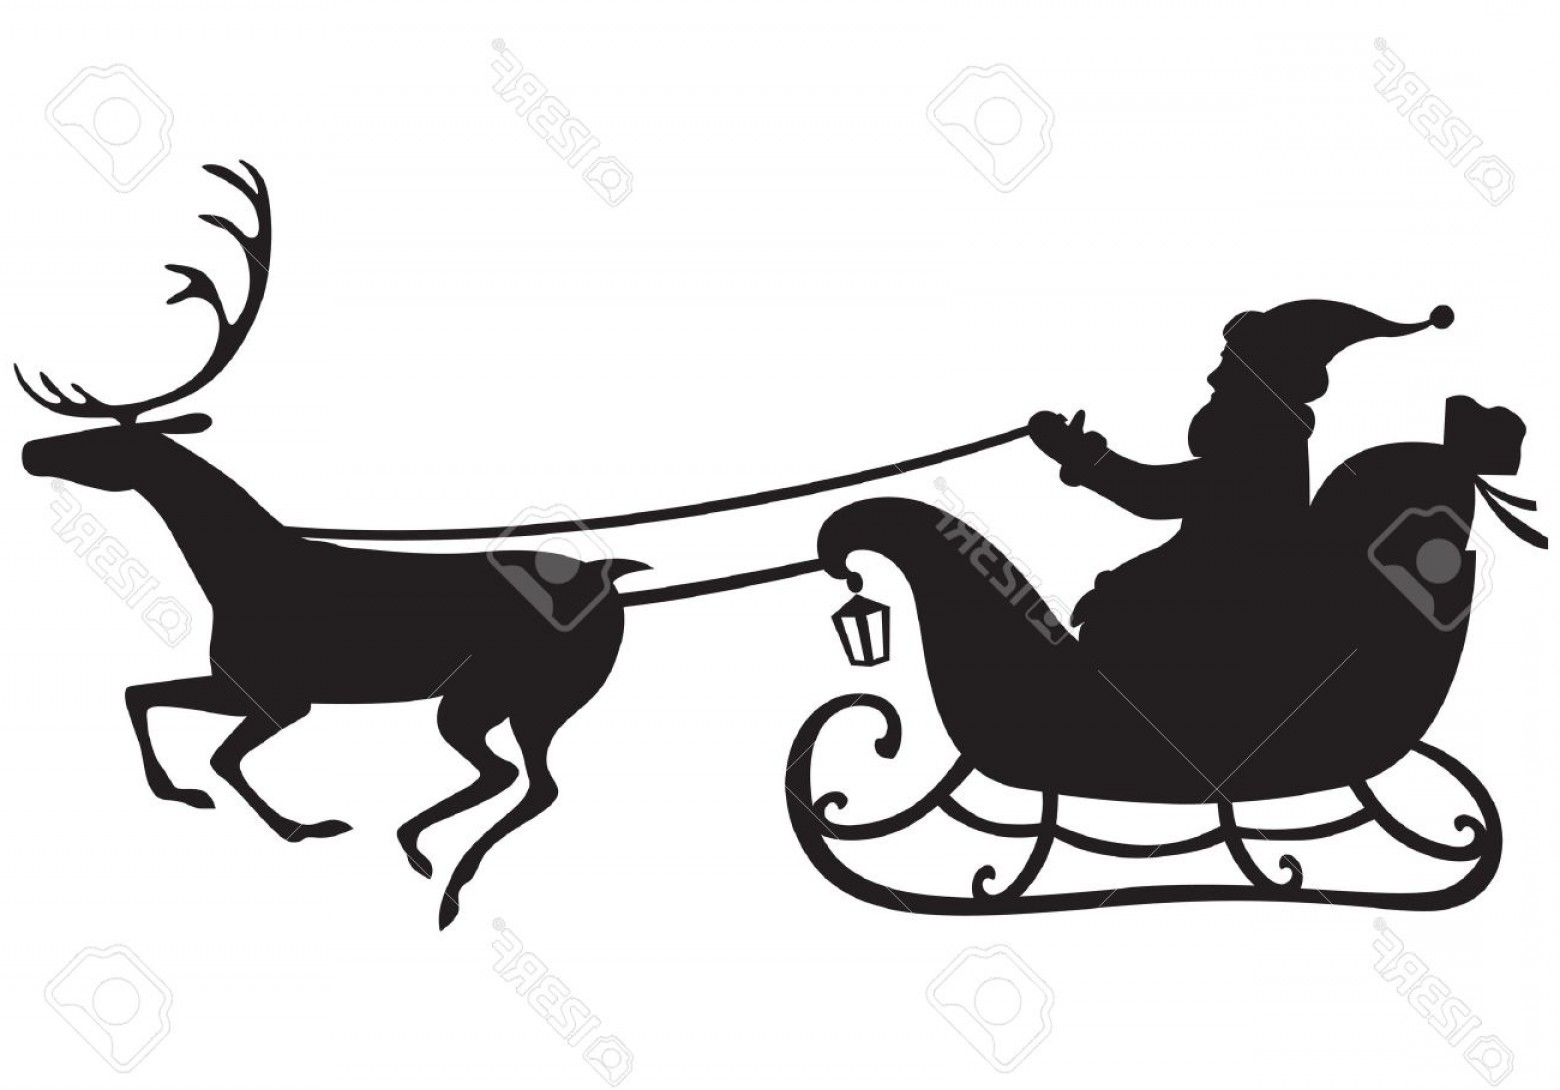 1560x1090 Photosilhouette Of Santa Claus Riding A Sleigh Pulled By Reindeer